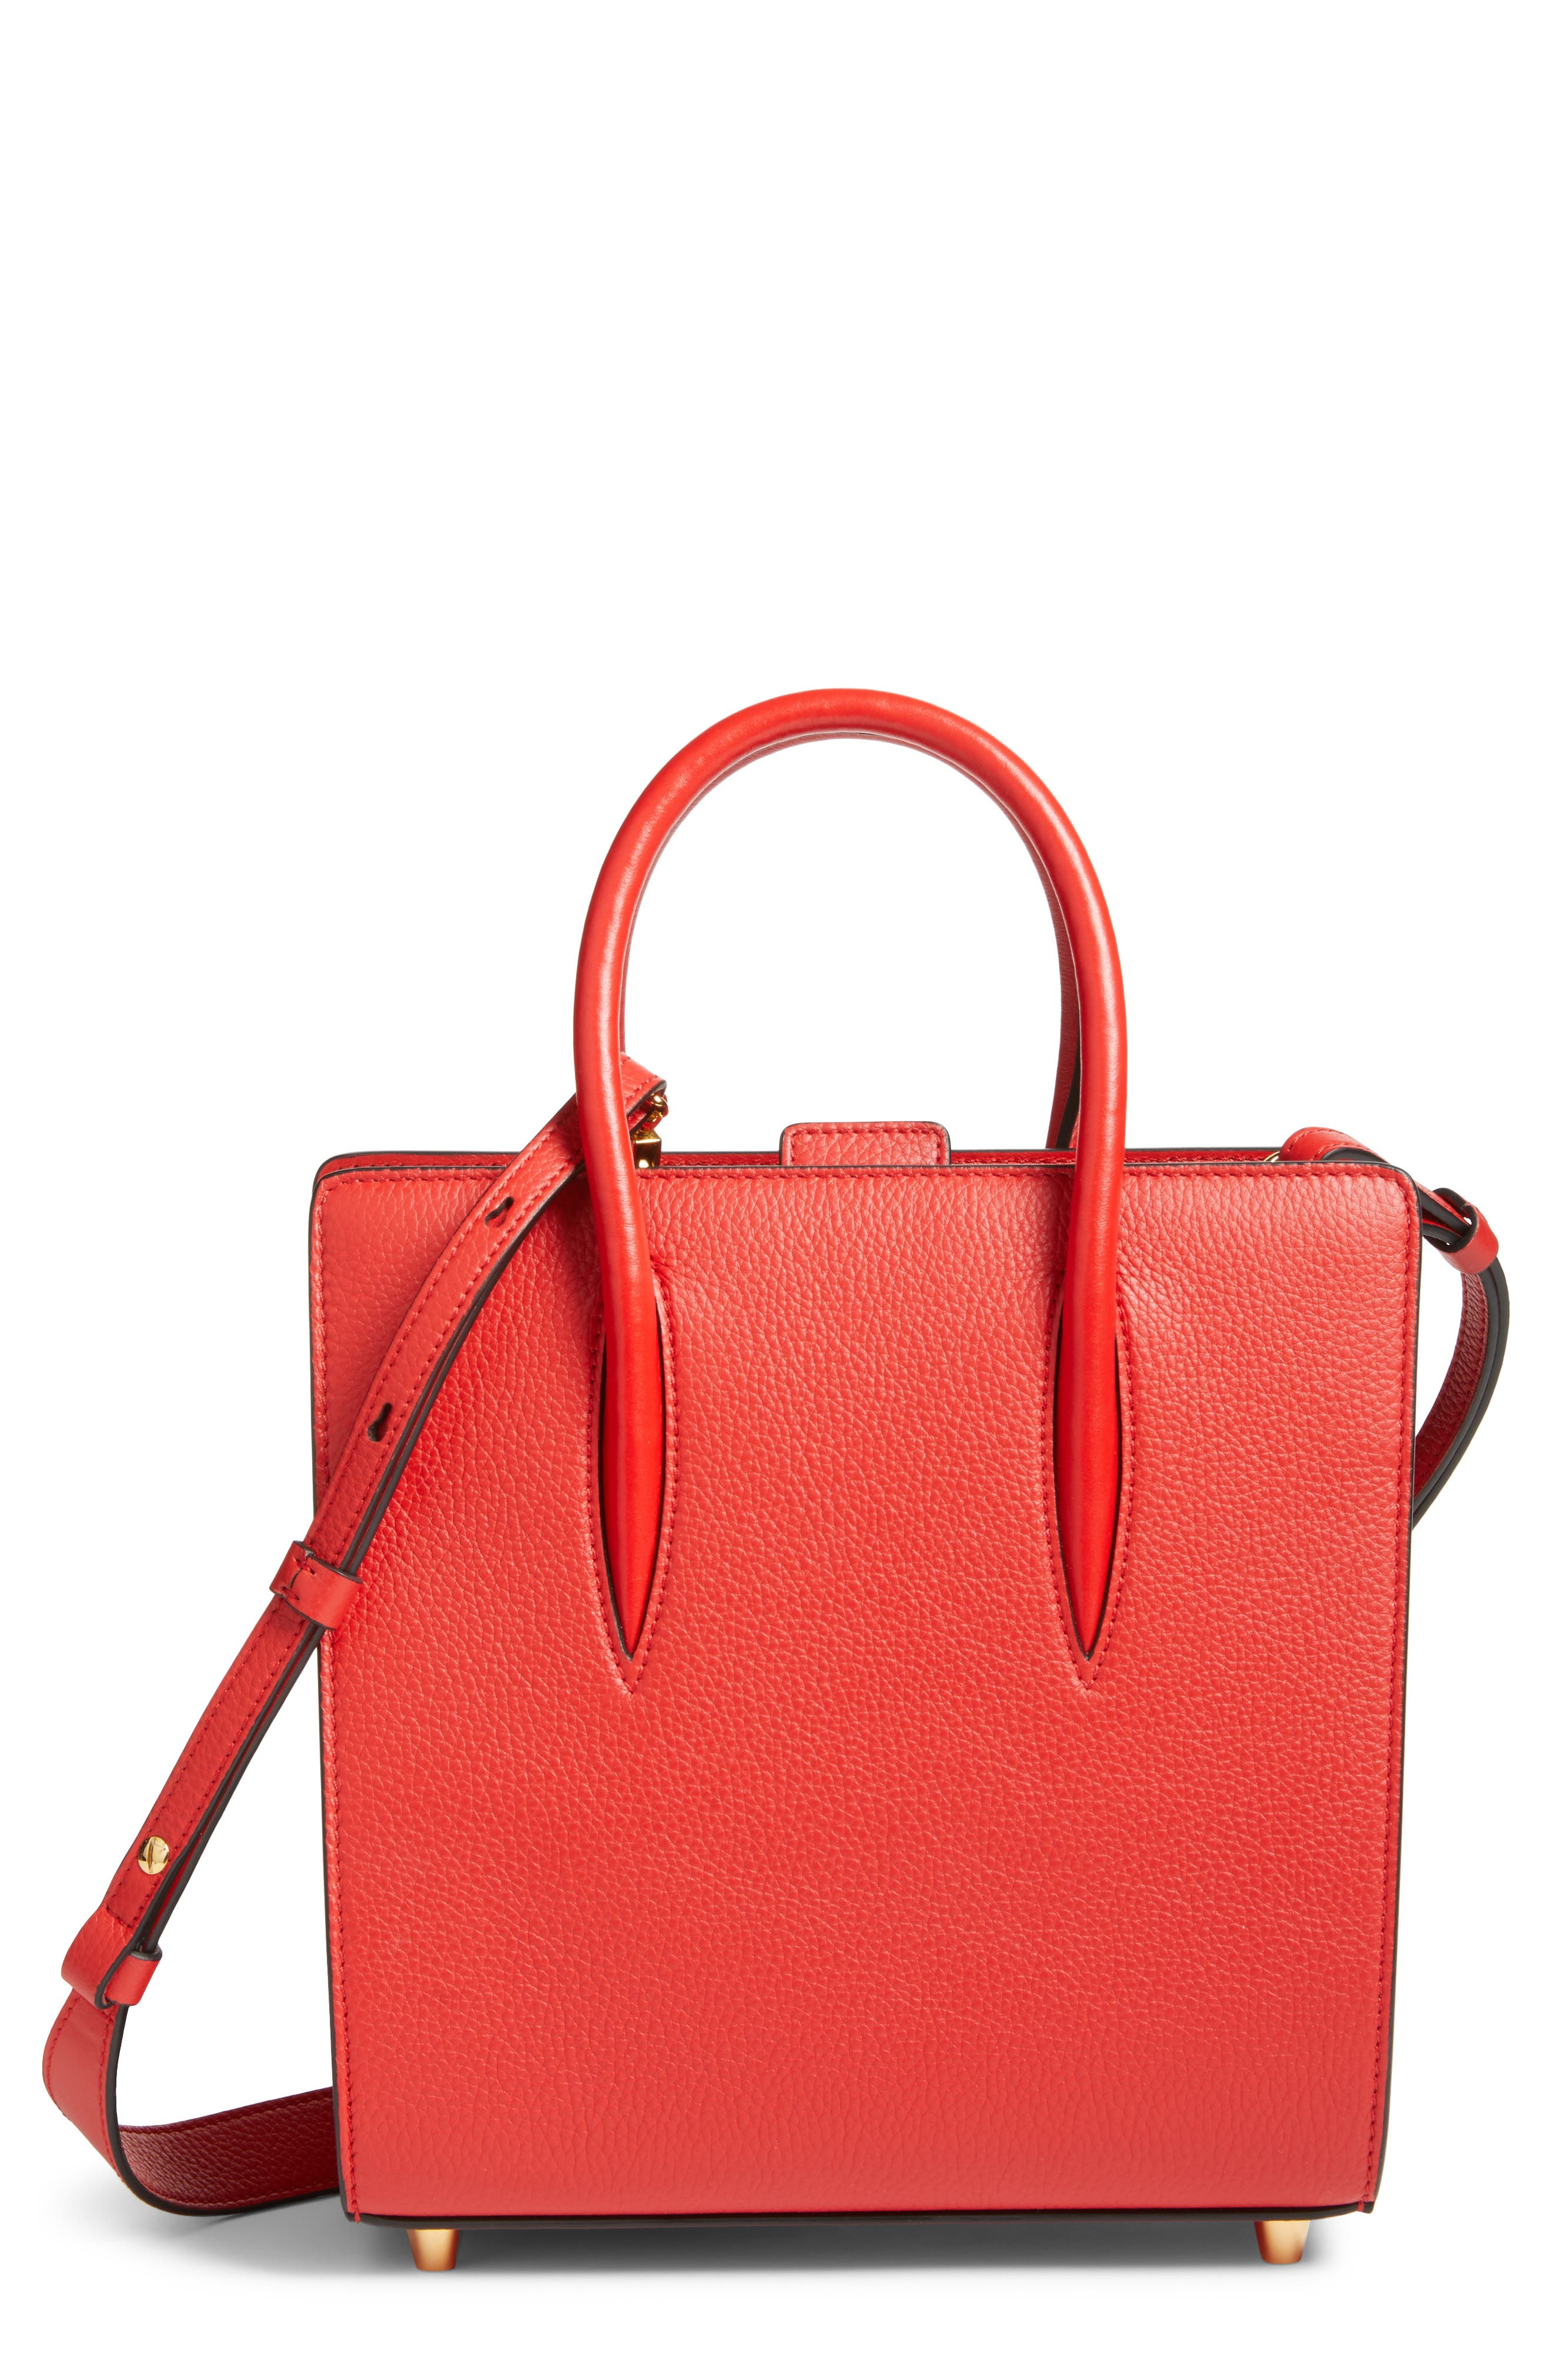 Alternate Image 1 Selected - Christian Louboutin Small Paloma Empire Leather Tote